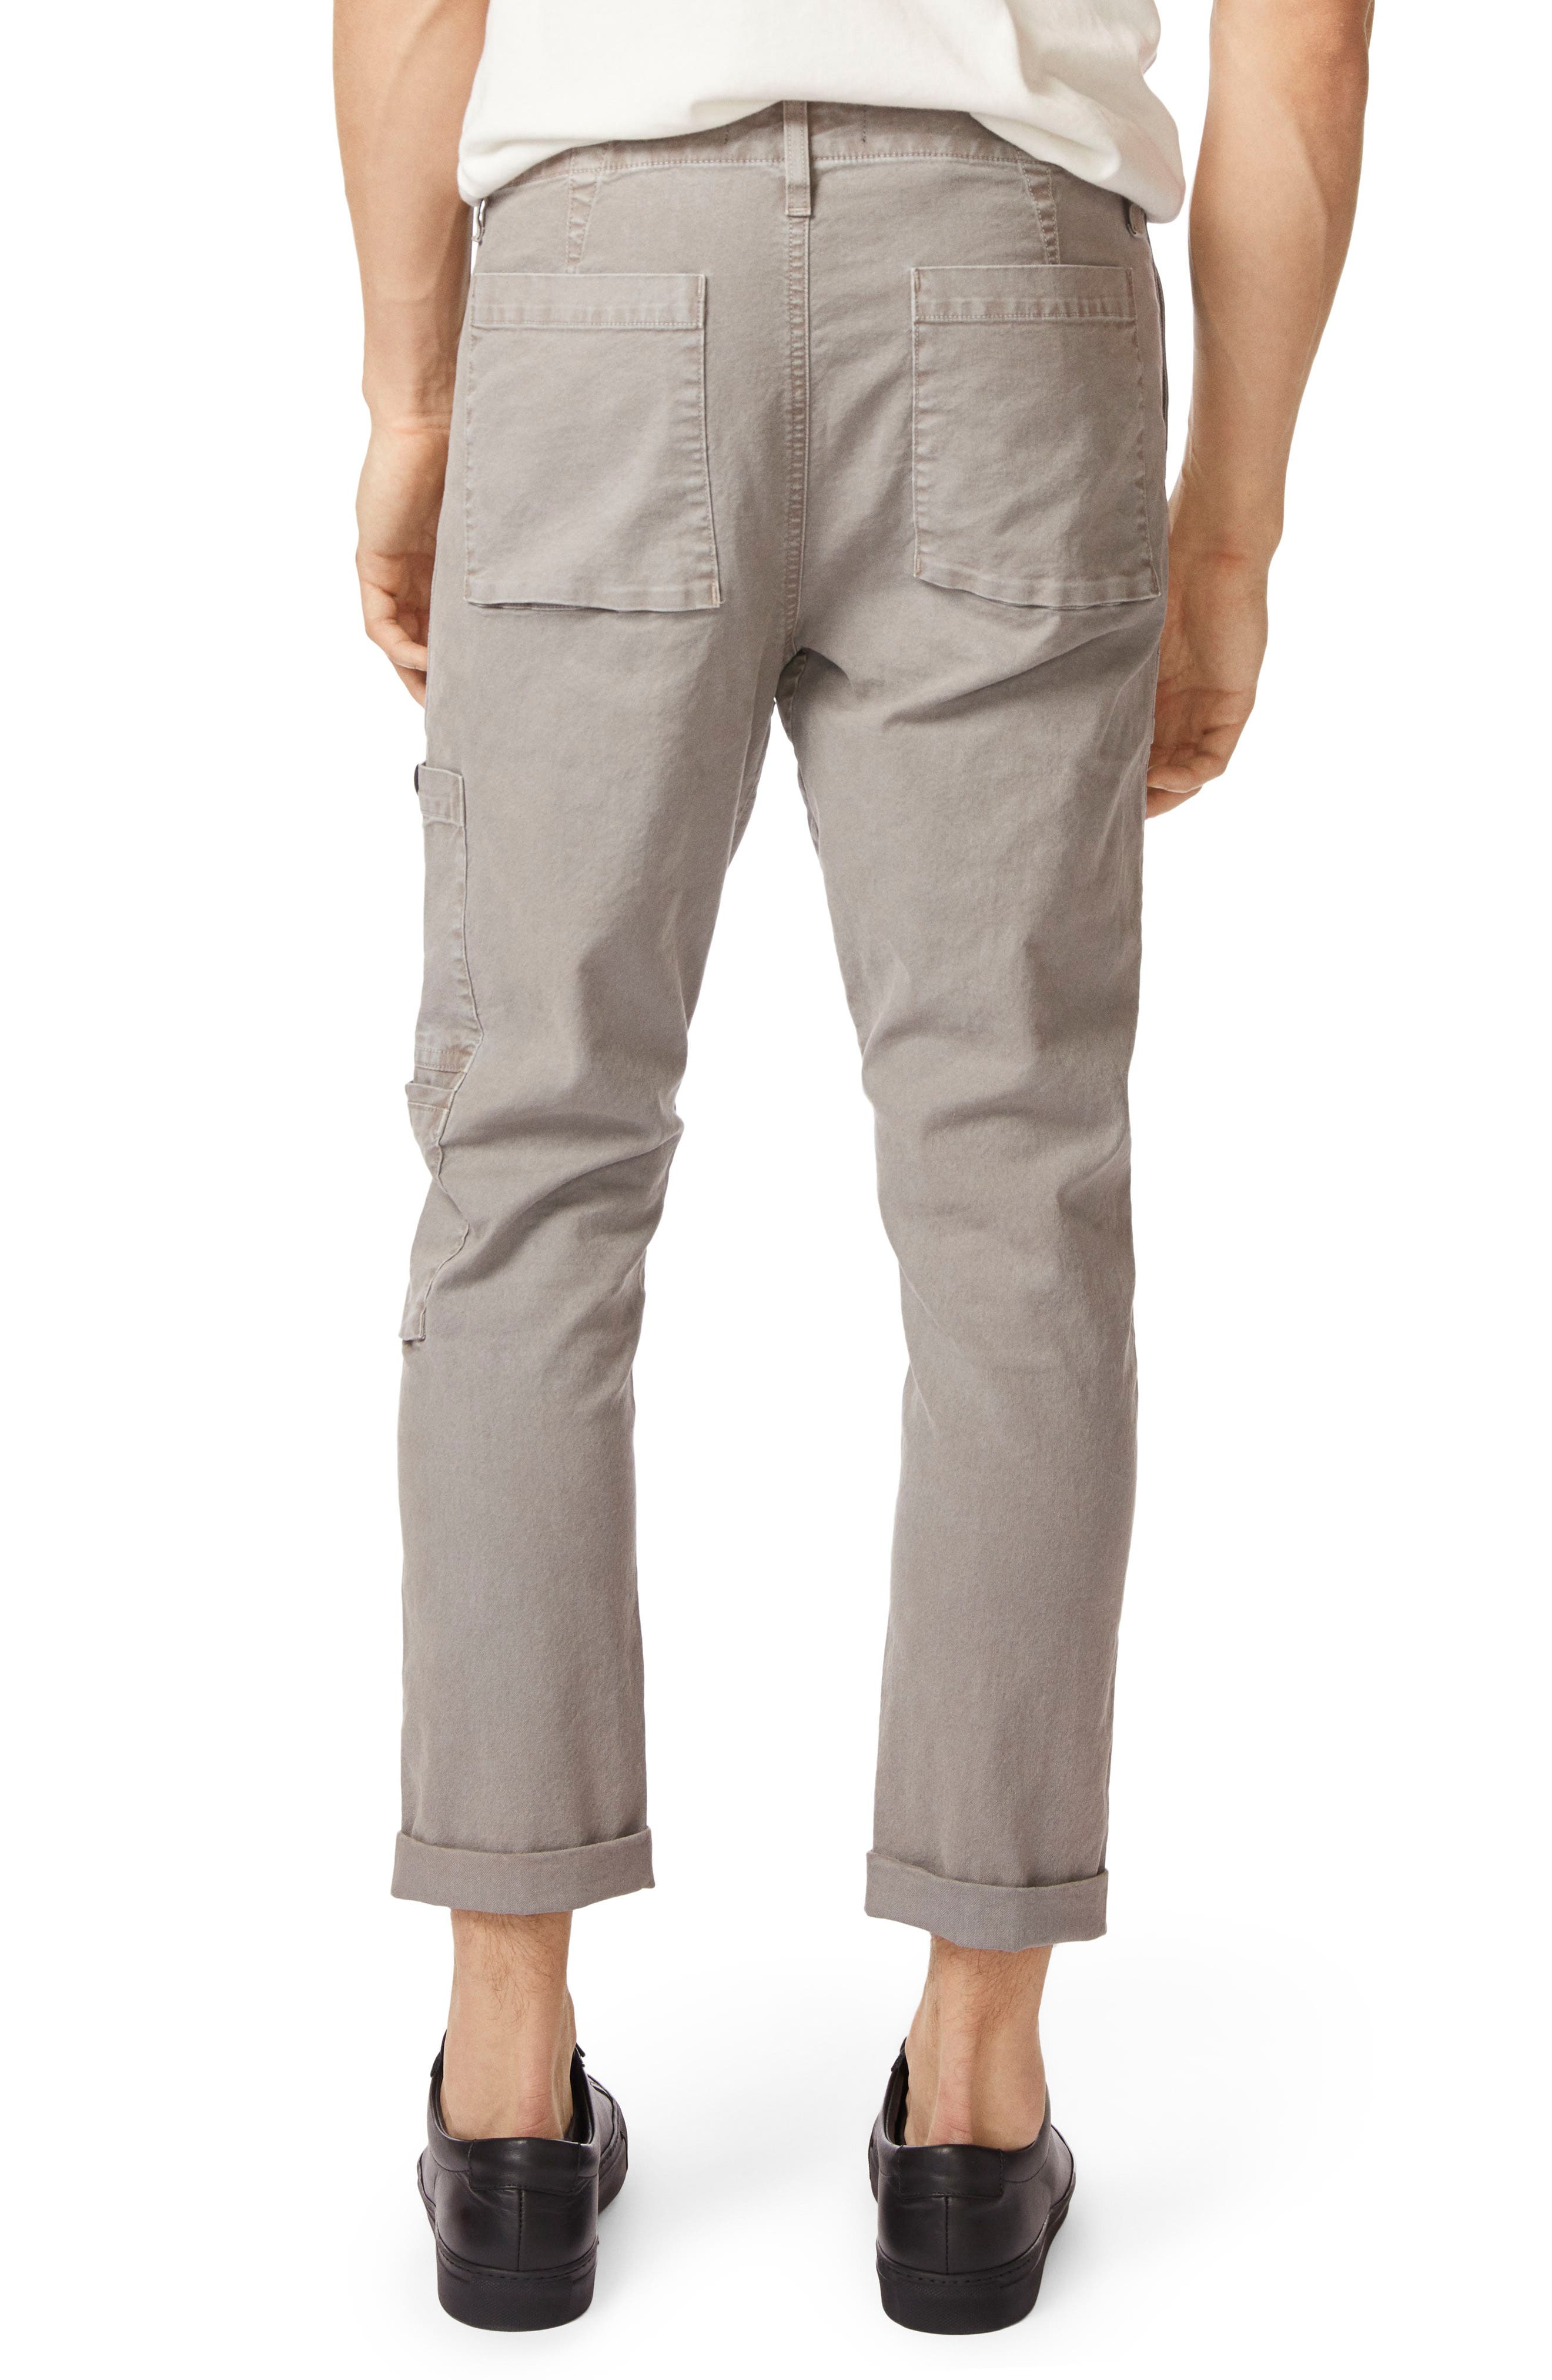 Koeficient Straight Fit Pant,                             Alternate thumbnail 2, color,                             314